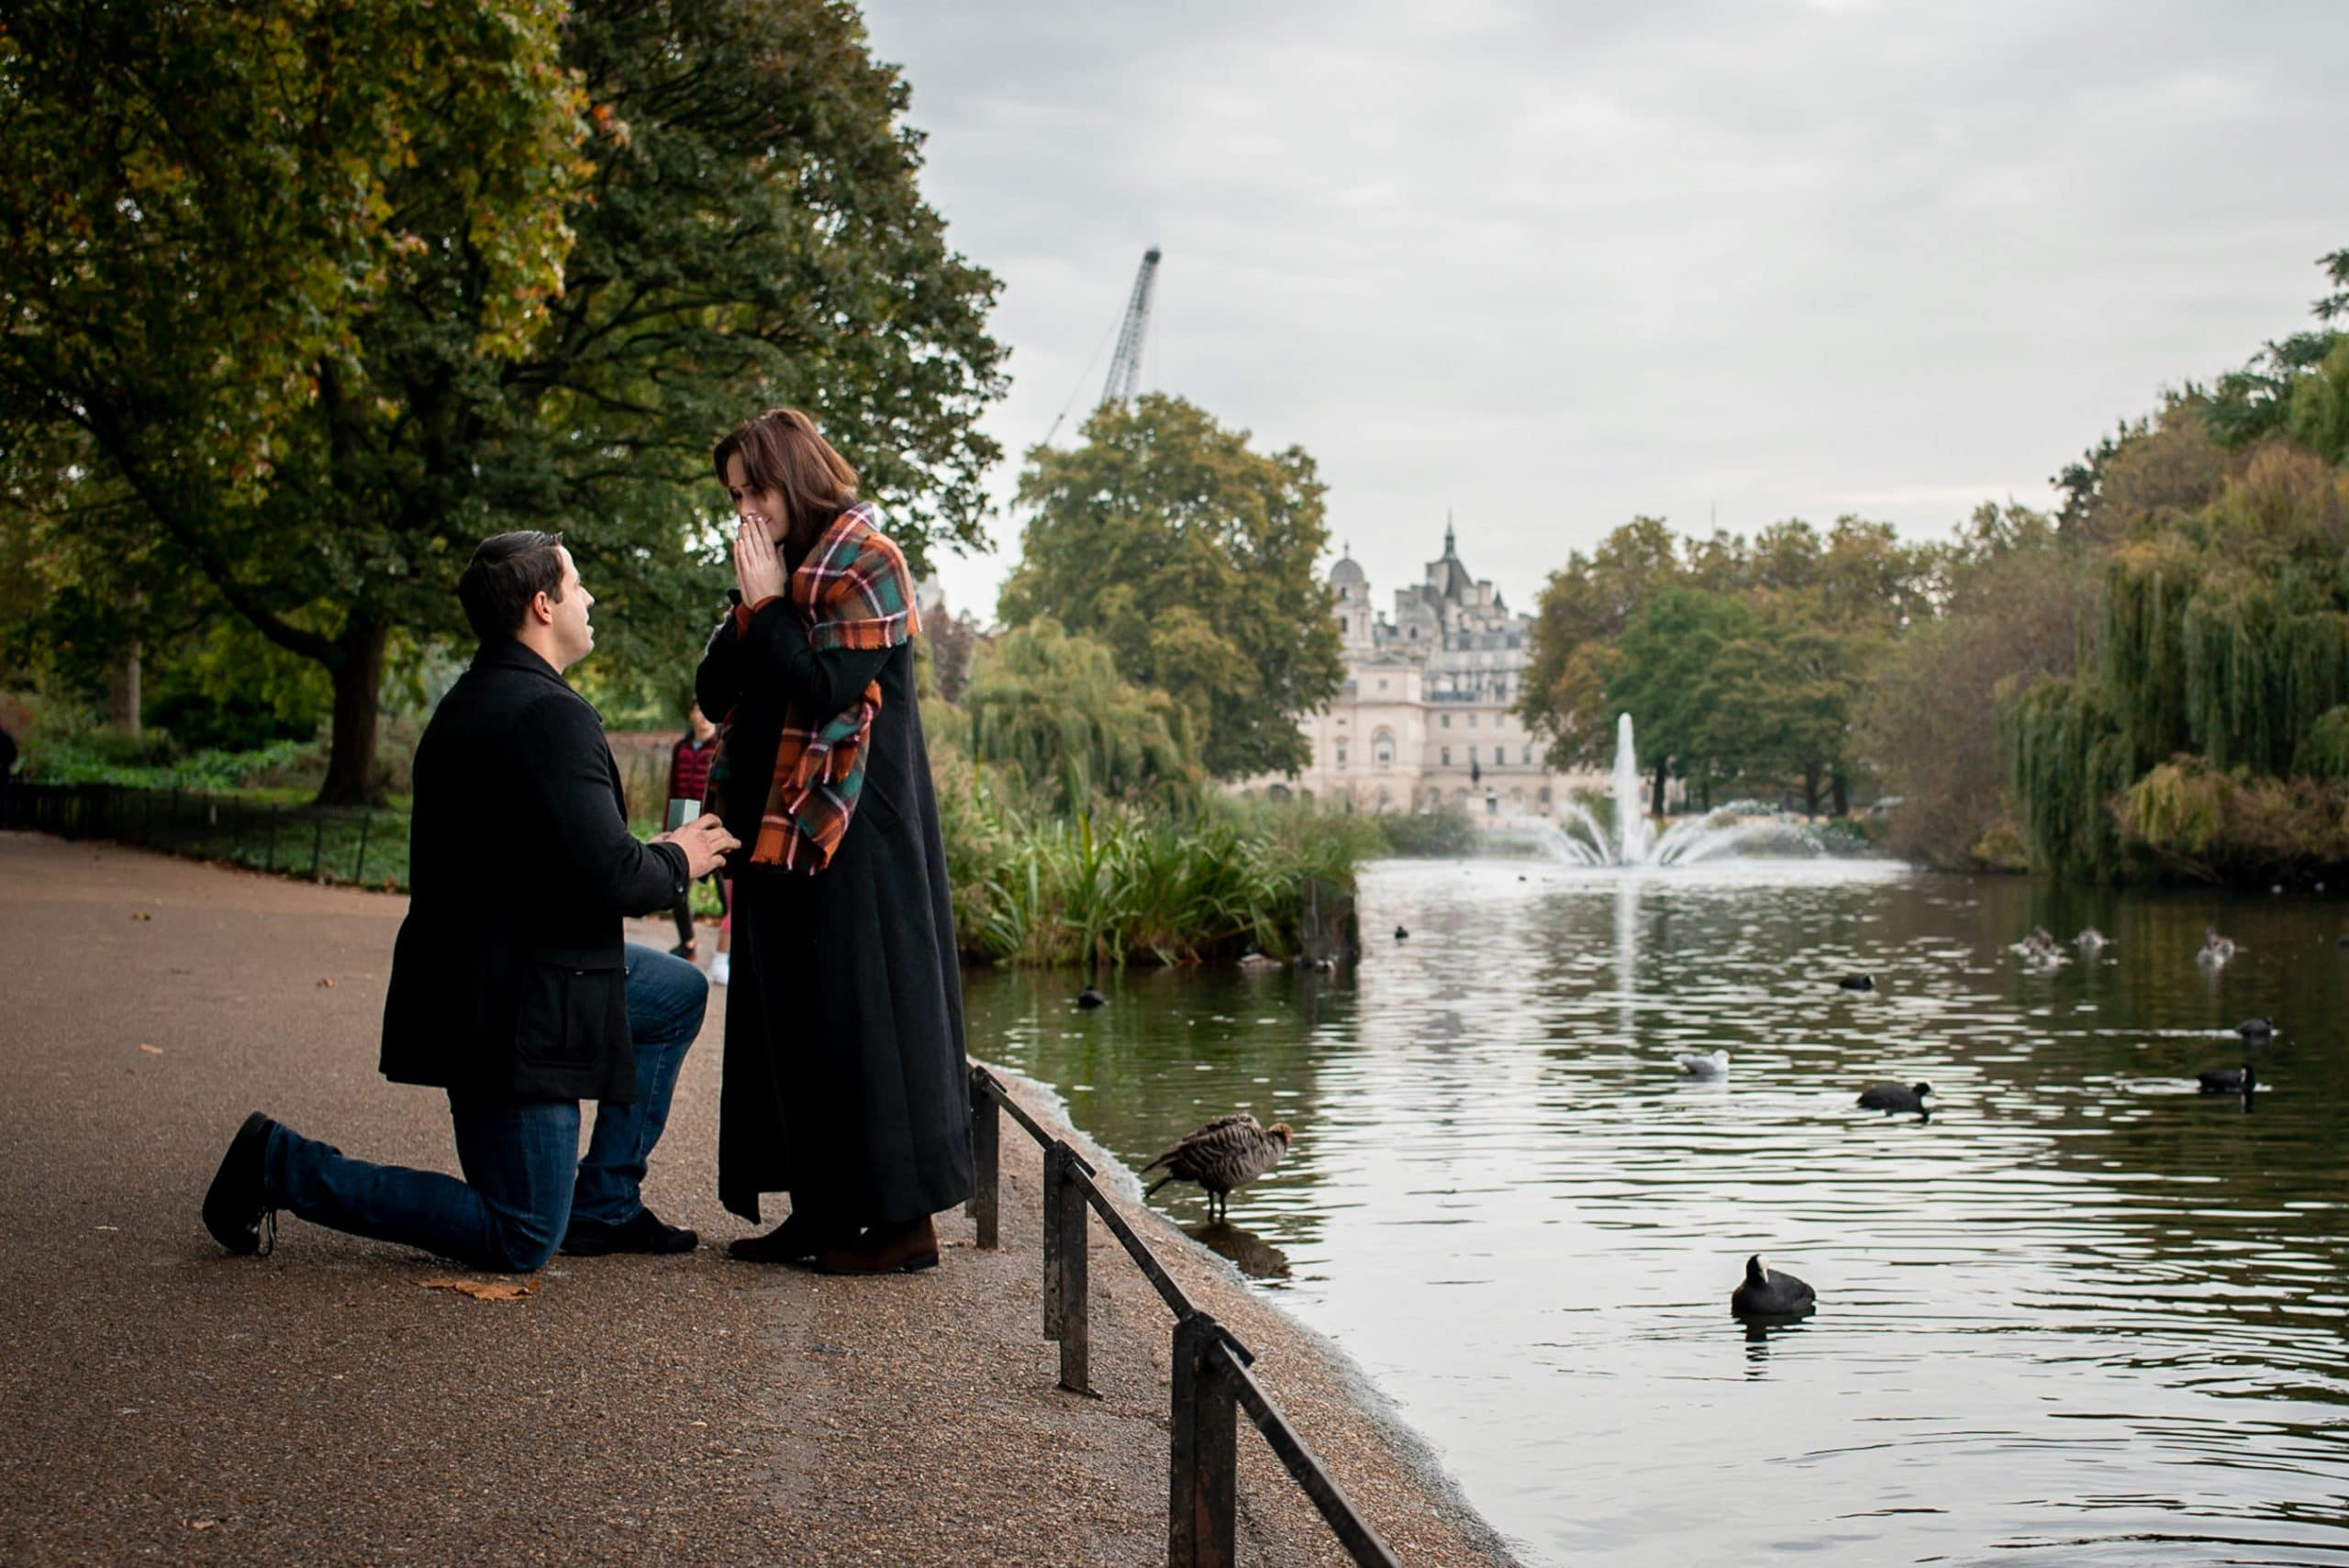 photo of man proposing to his girlfriend in Regents Park, London